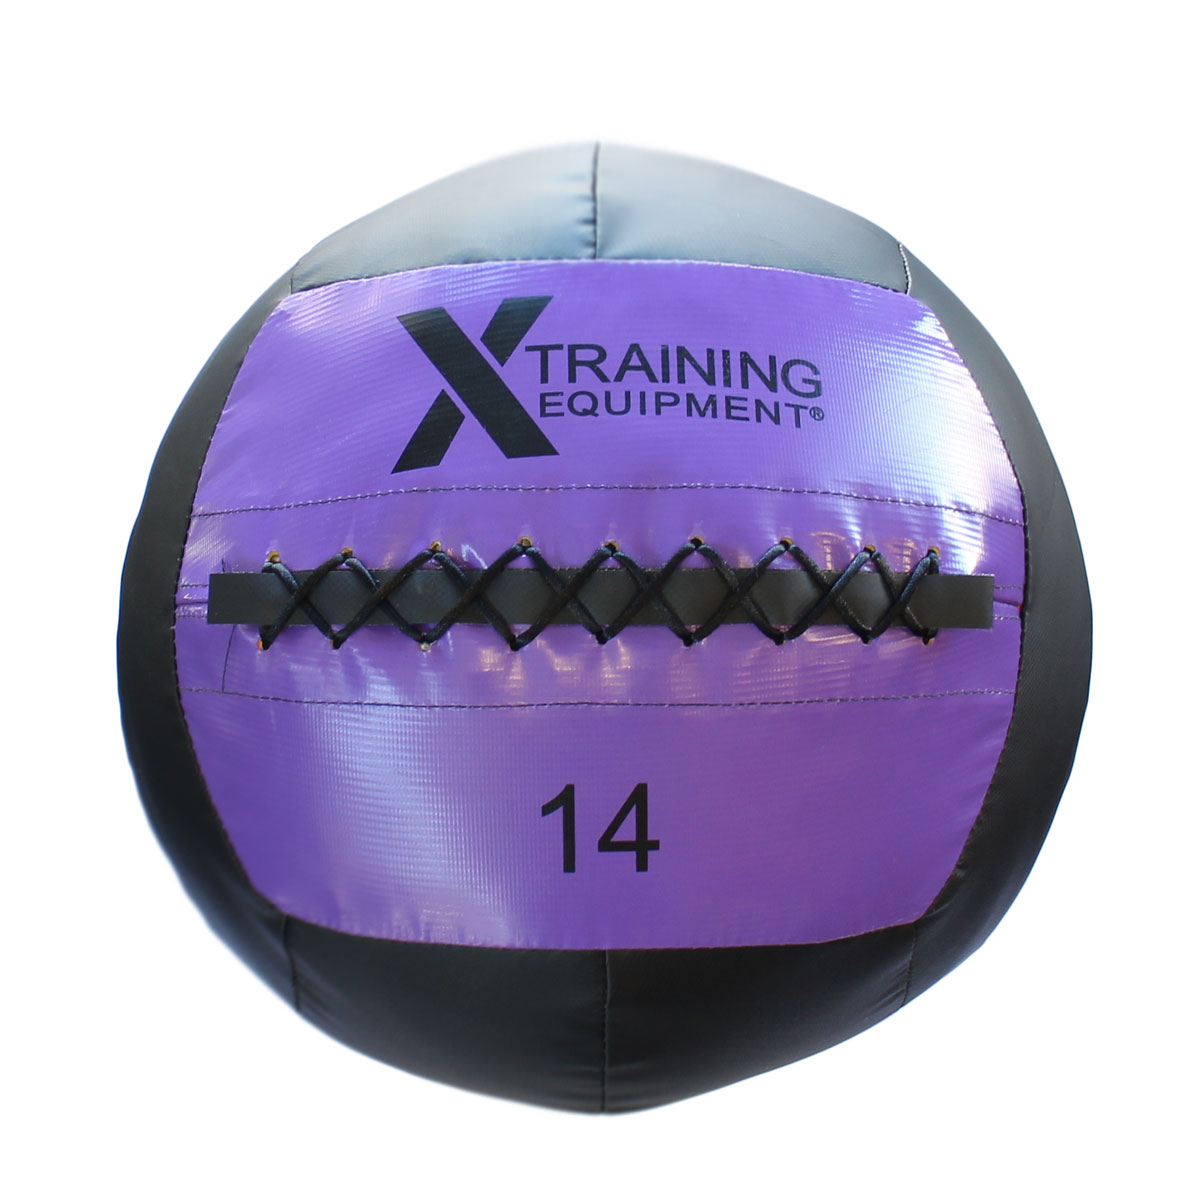 010c45f6d 14LB Wall Ball - Heavy-Duty Medicine Ball - Free Shipping